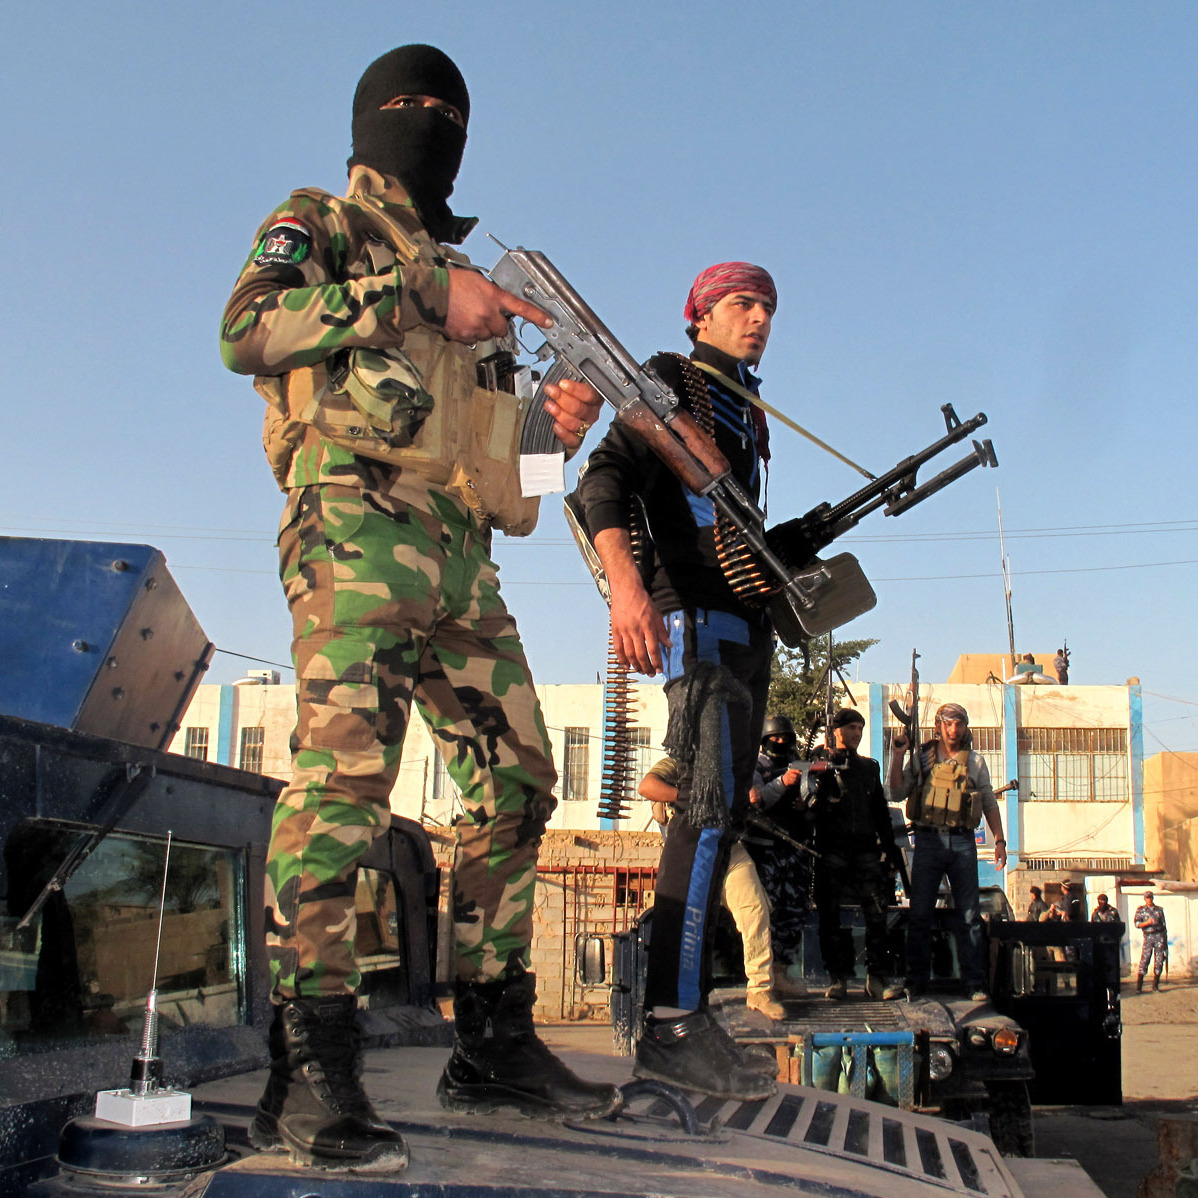 Tribesmen and Iraqi police forces hold a position in a street of the city of Ramadi, west of the capital Baghdad, on Jan. 30, during a military operation against anti-government fighters.